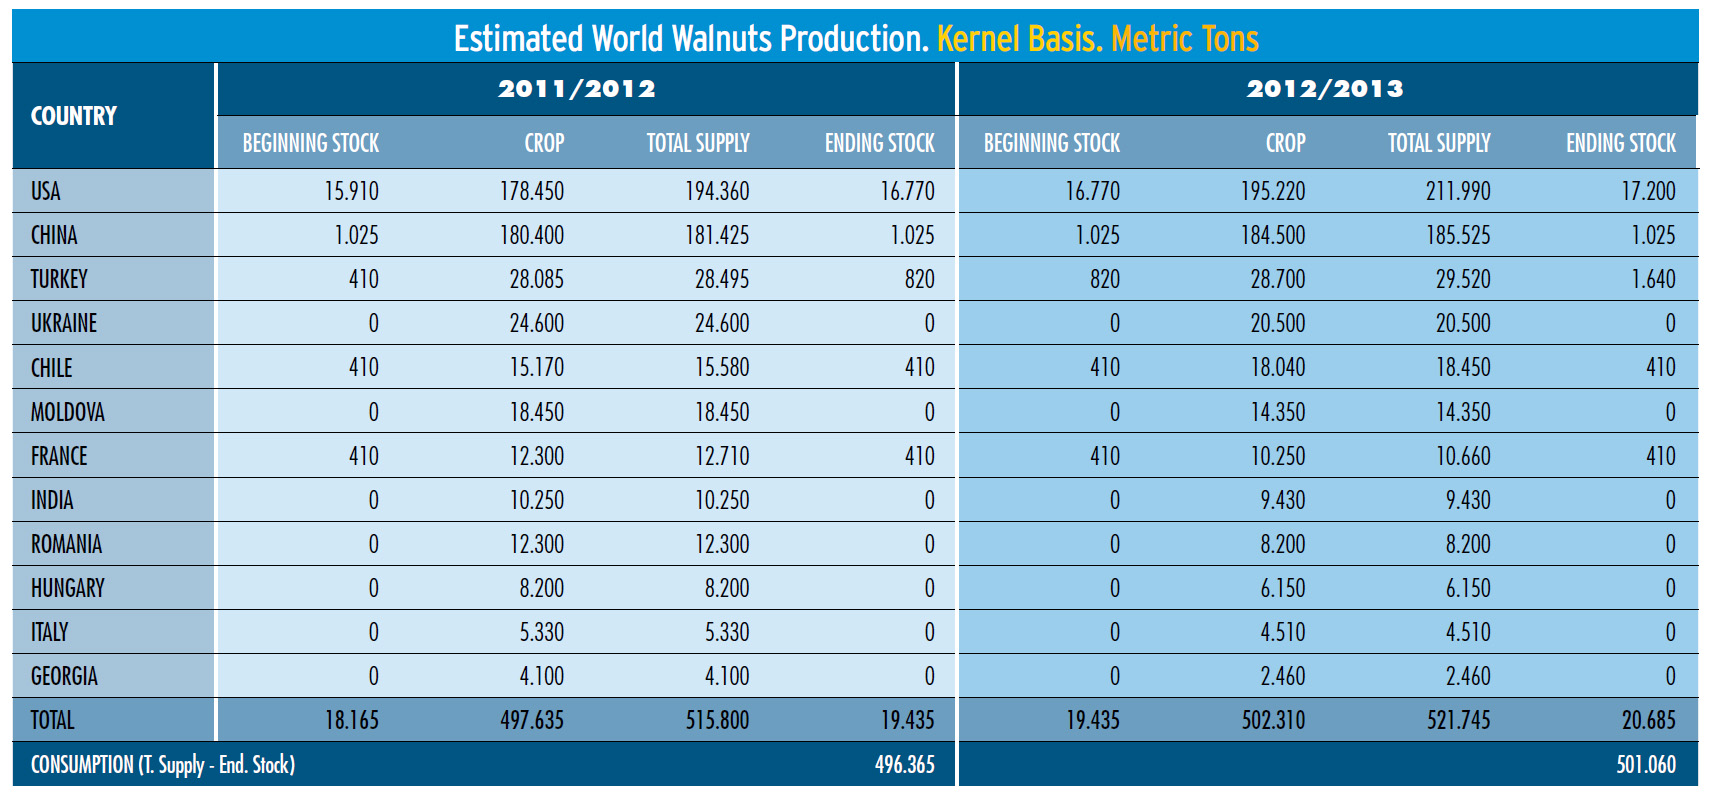 Walnut Production_Kernel basis.jpg